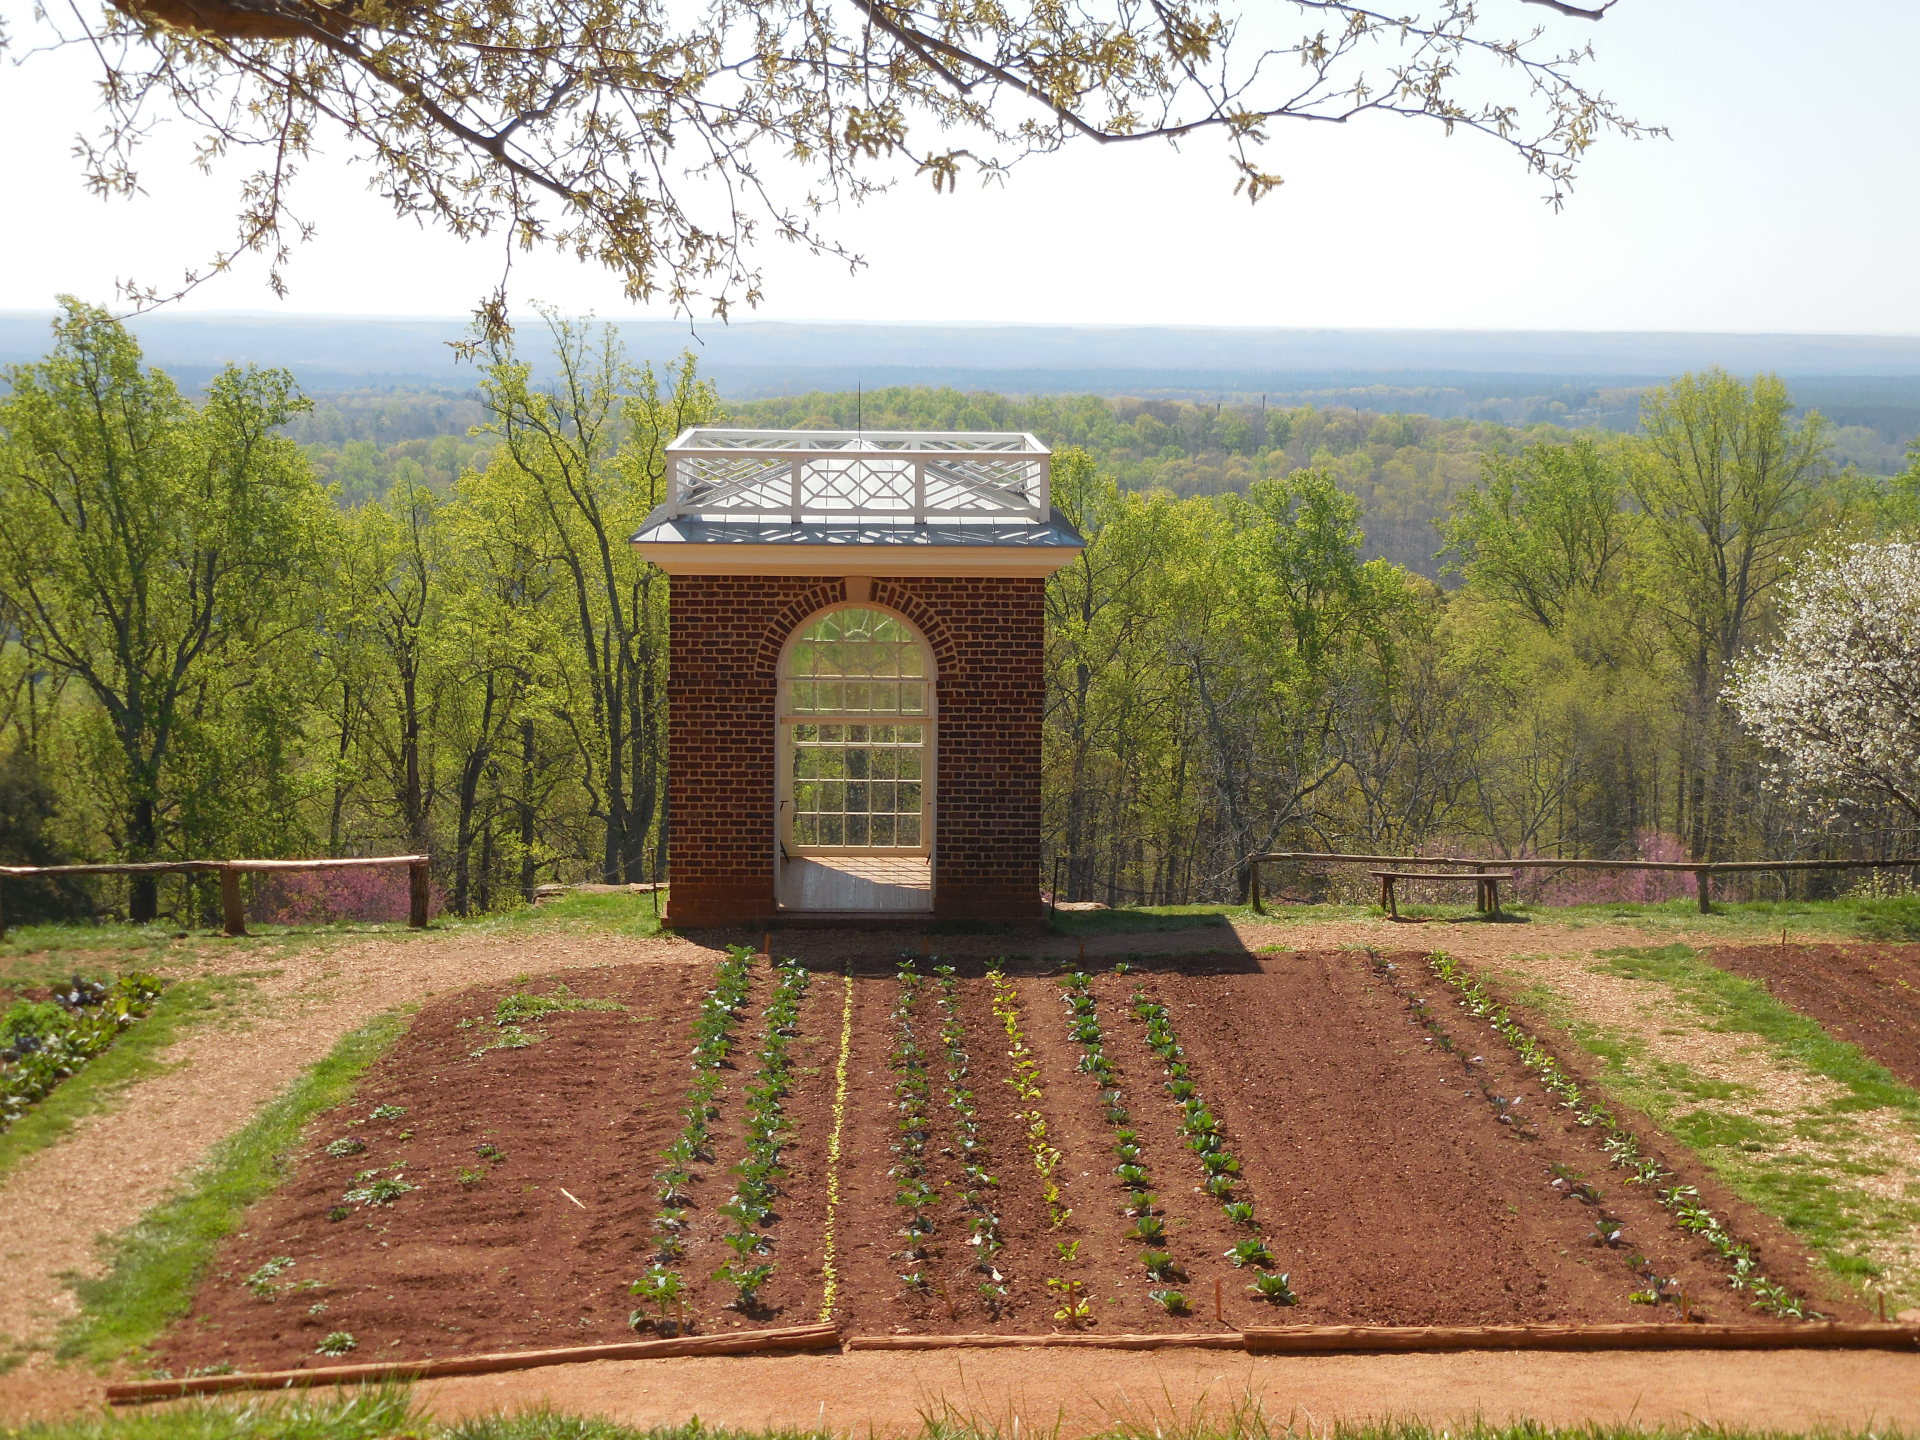 Thomas Jefferson's Garden : An Earth Day Meditation